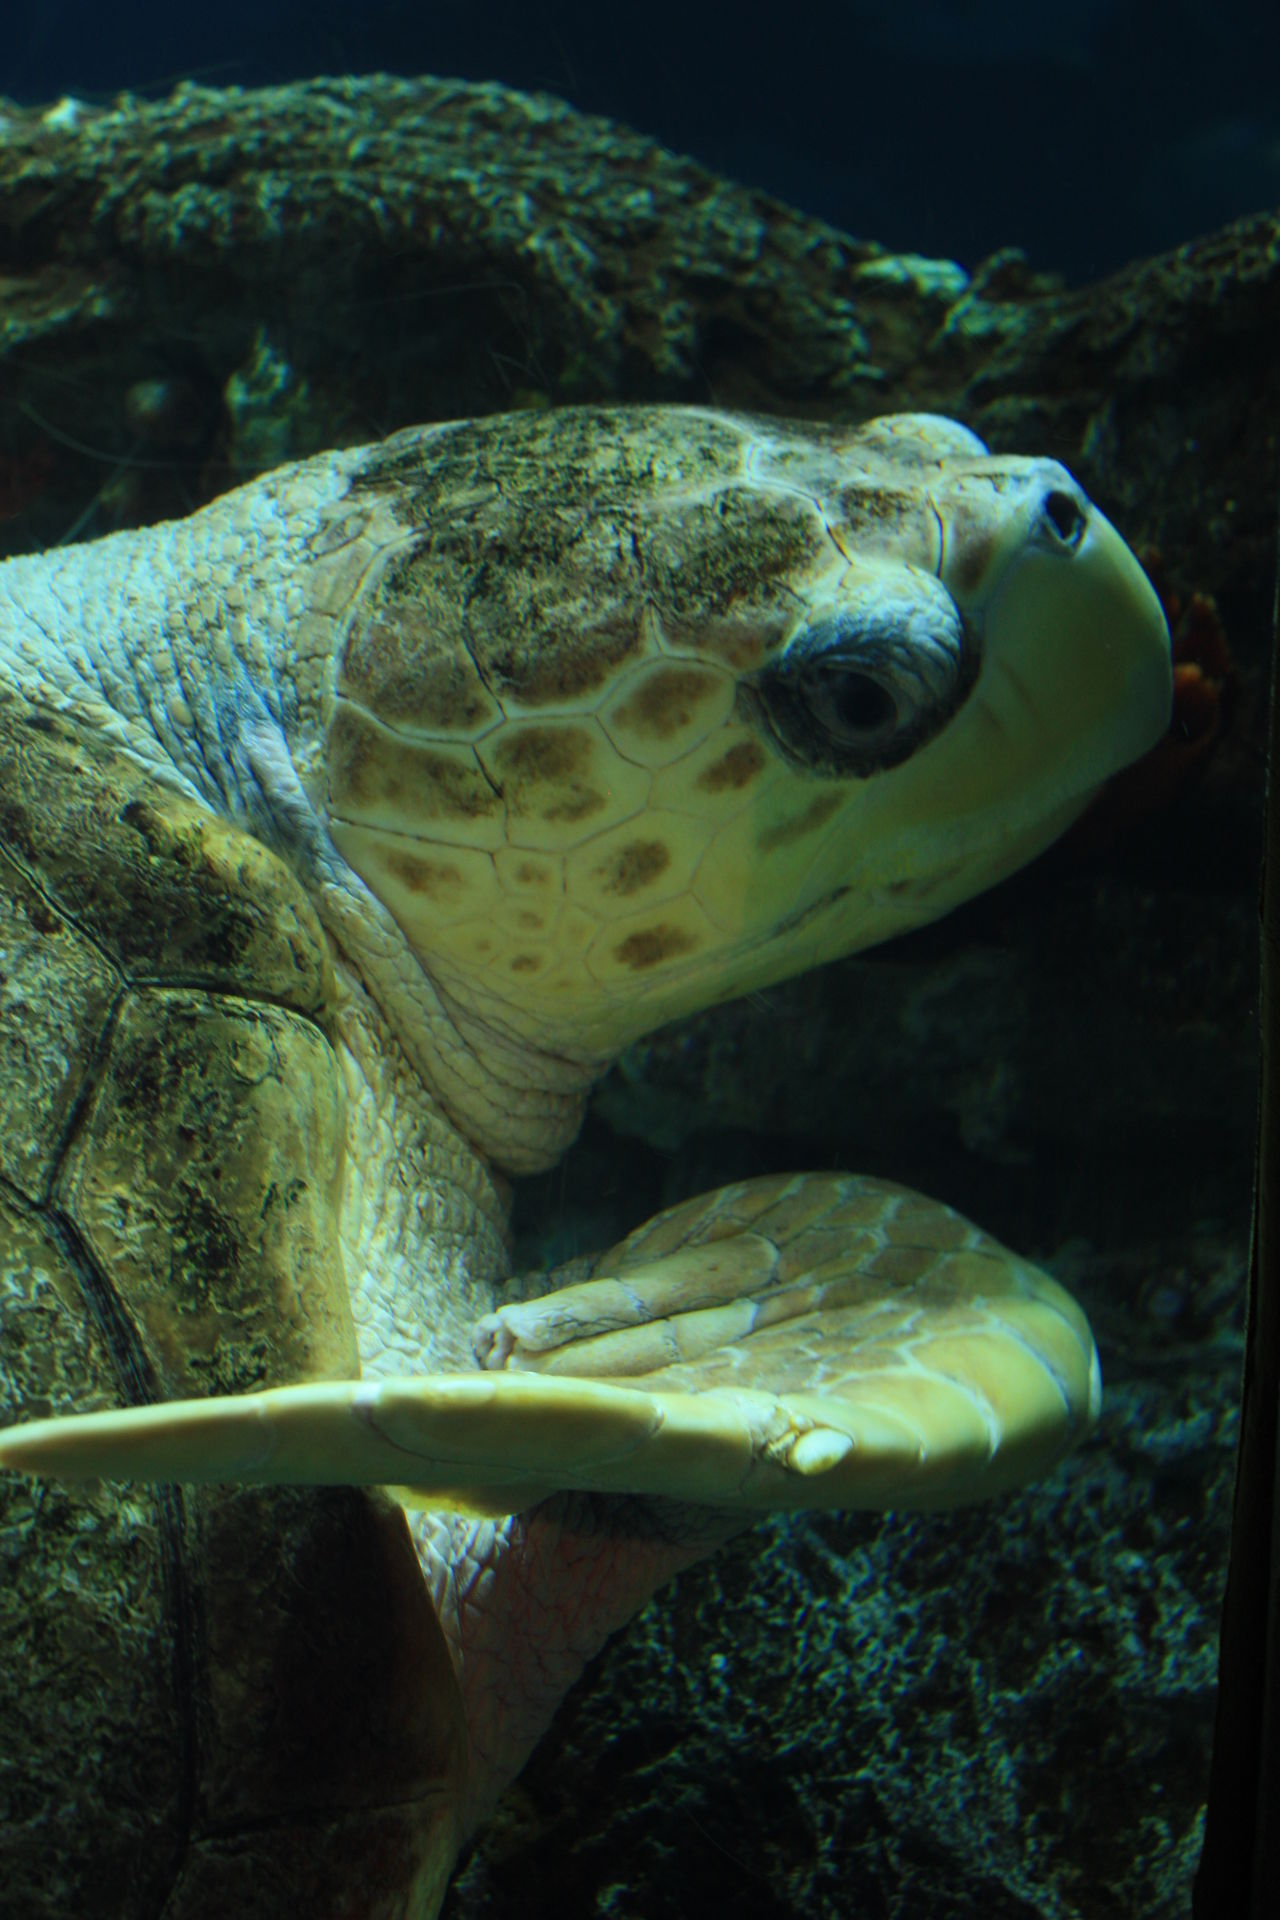 Animal Themes Animal Wildlife Animals In The Wild Aquarium Beauty In Nature Close-up Day Mammal Nature No People One Animal Outdoors Reptile Sea Sea Life Sea Turtle Swimming Tortoise Turtle UnderSea Underwater Water Wildlife